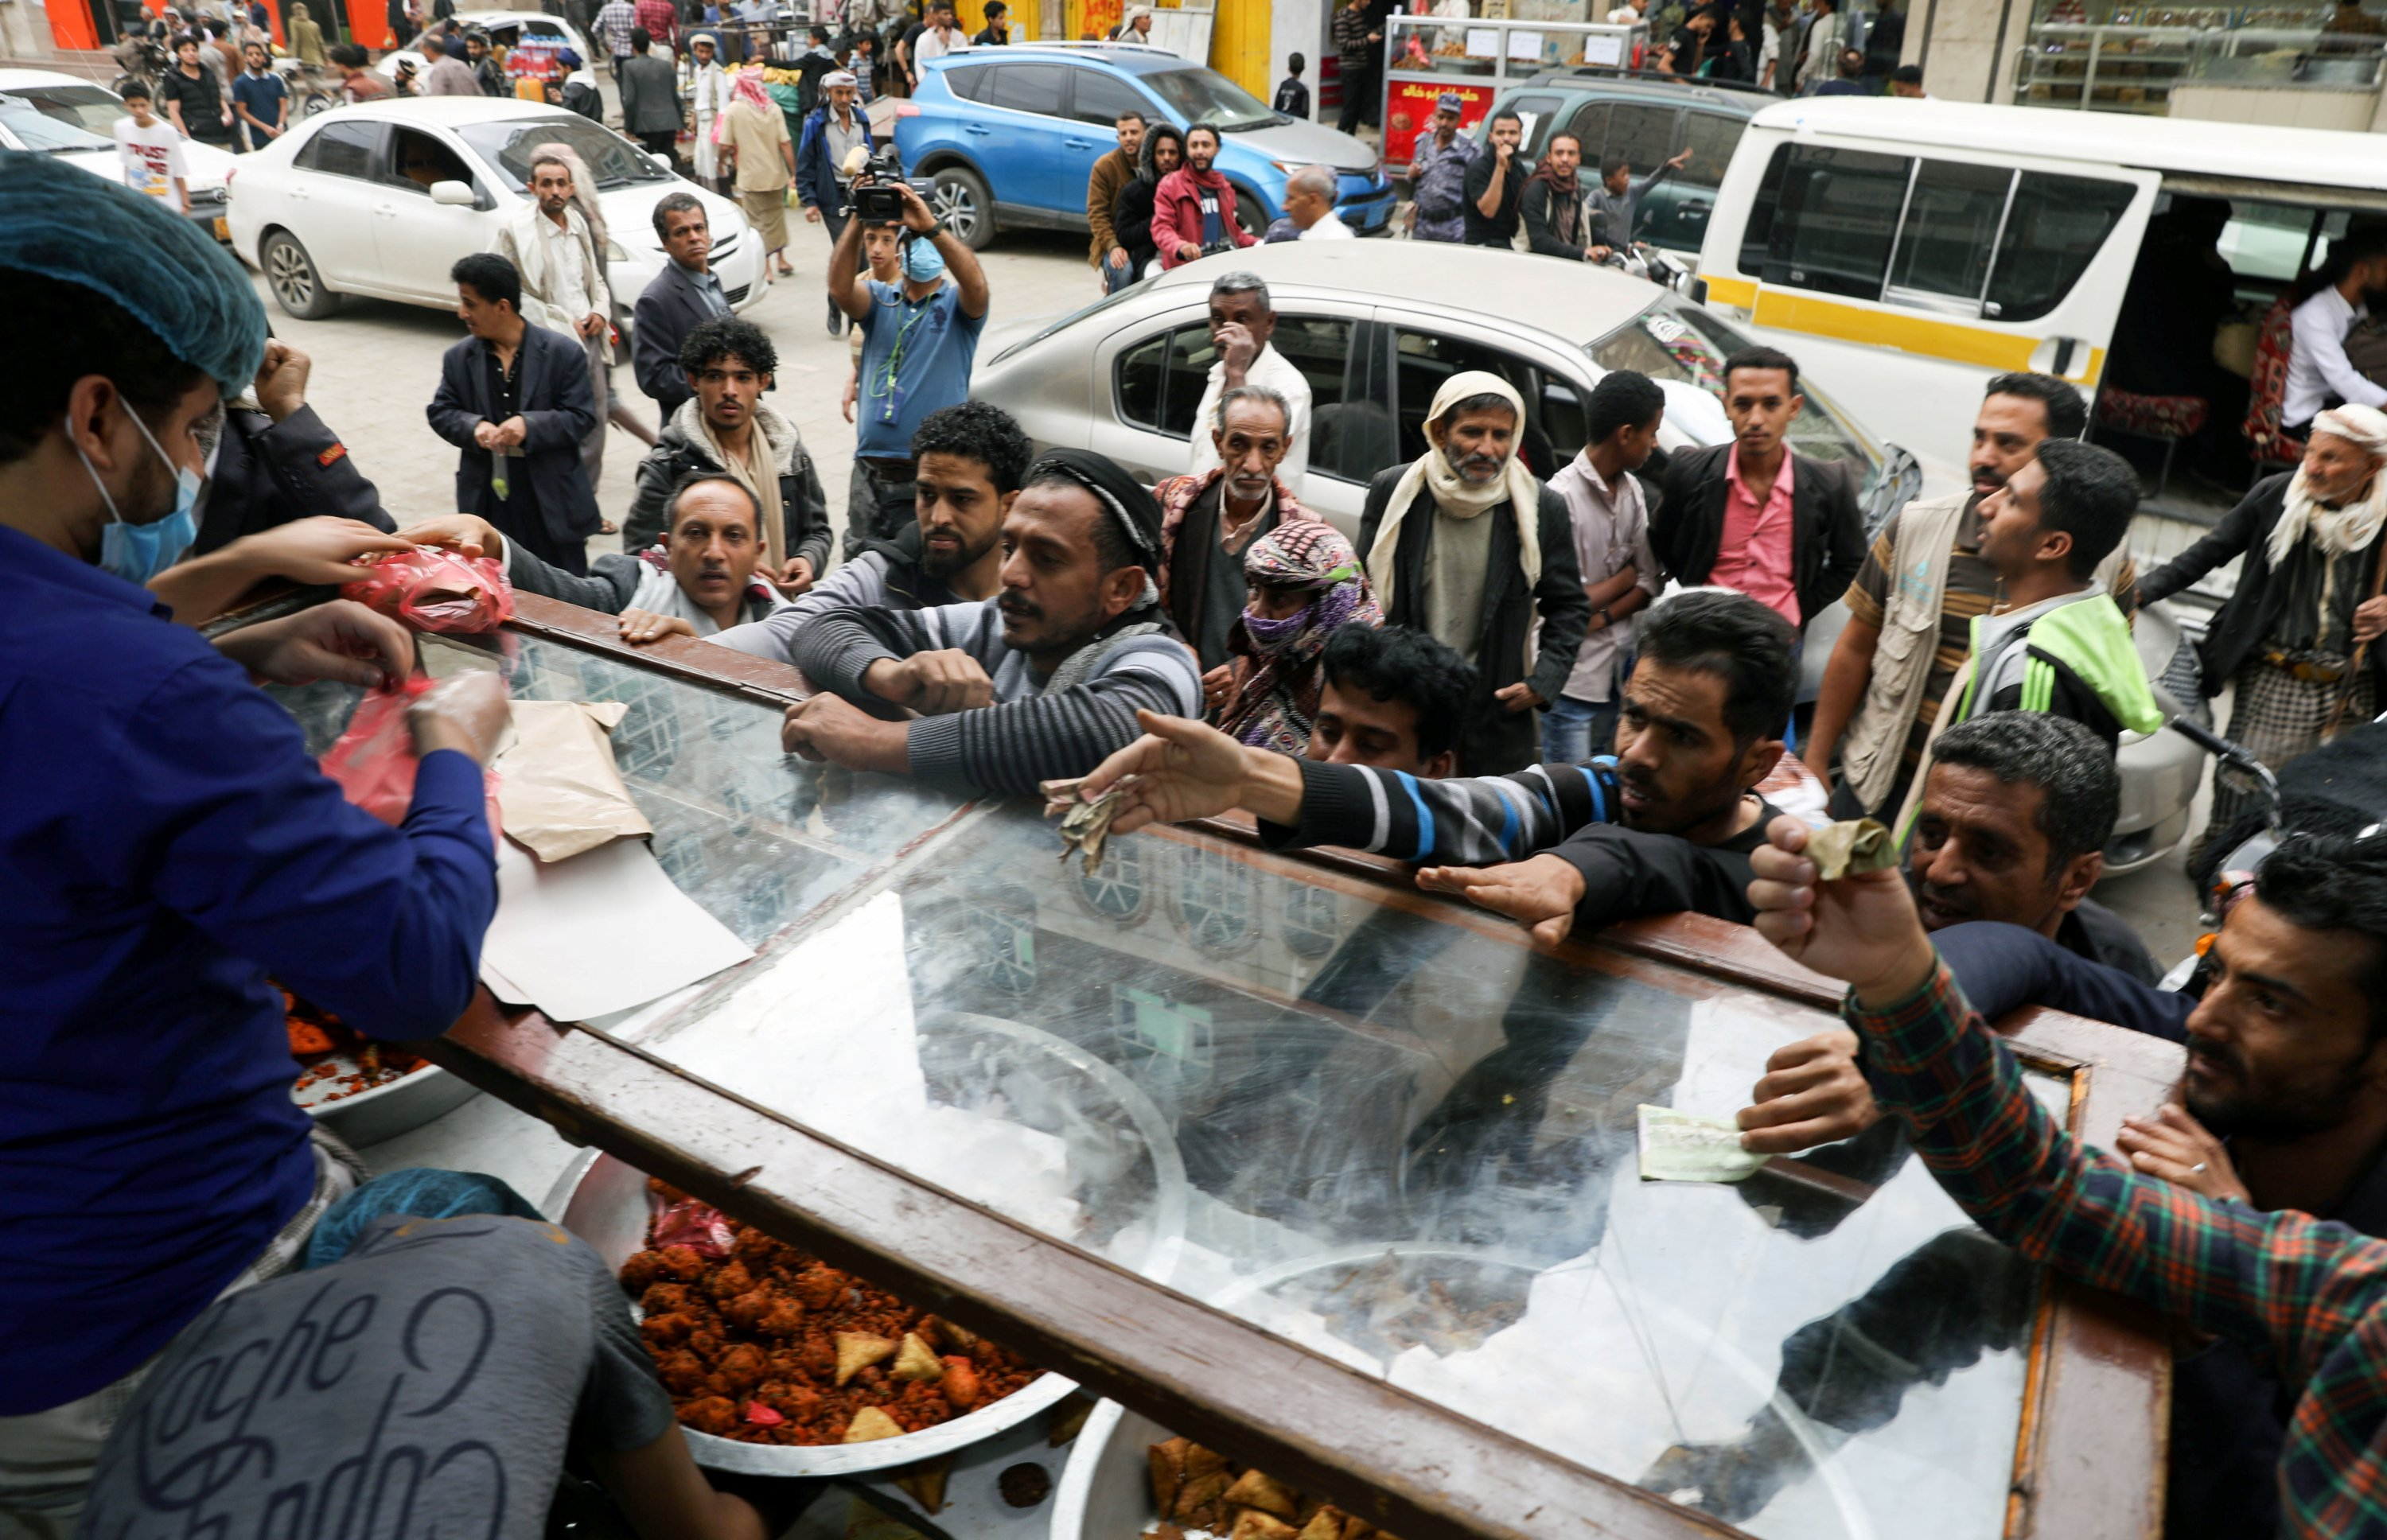 People gather outside a pastry shop to buy sambusa during the holy month of Ramadan in Sanaa, Yemen, April 15, 2021. (Reuters Photo)